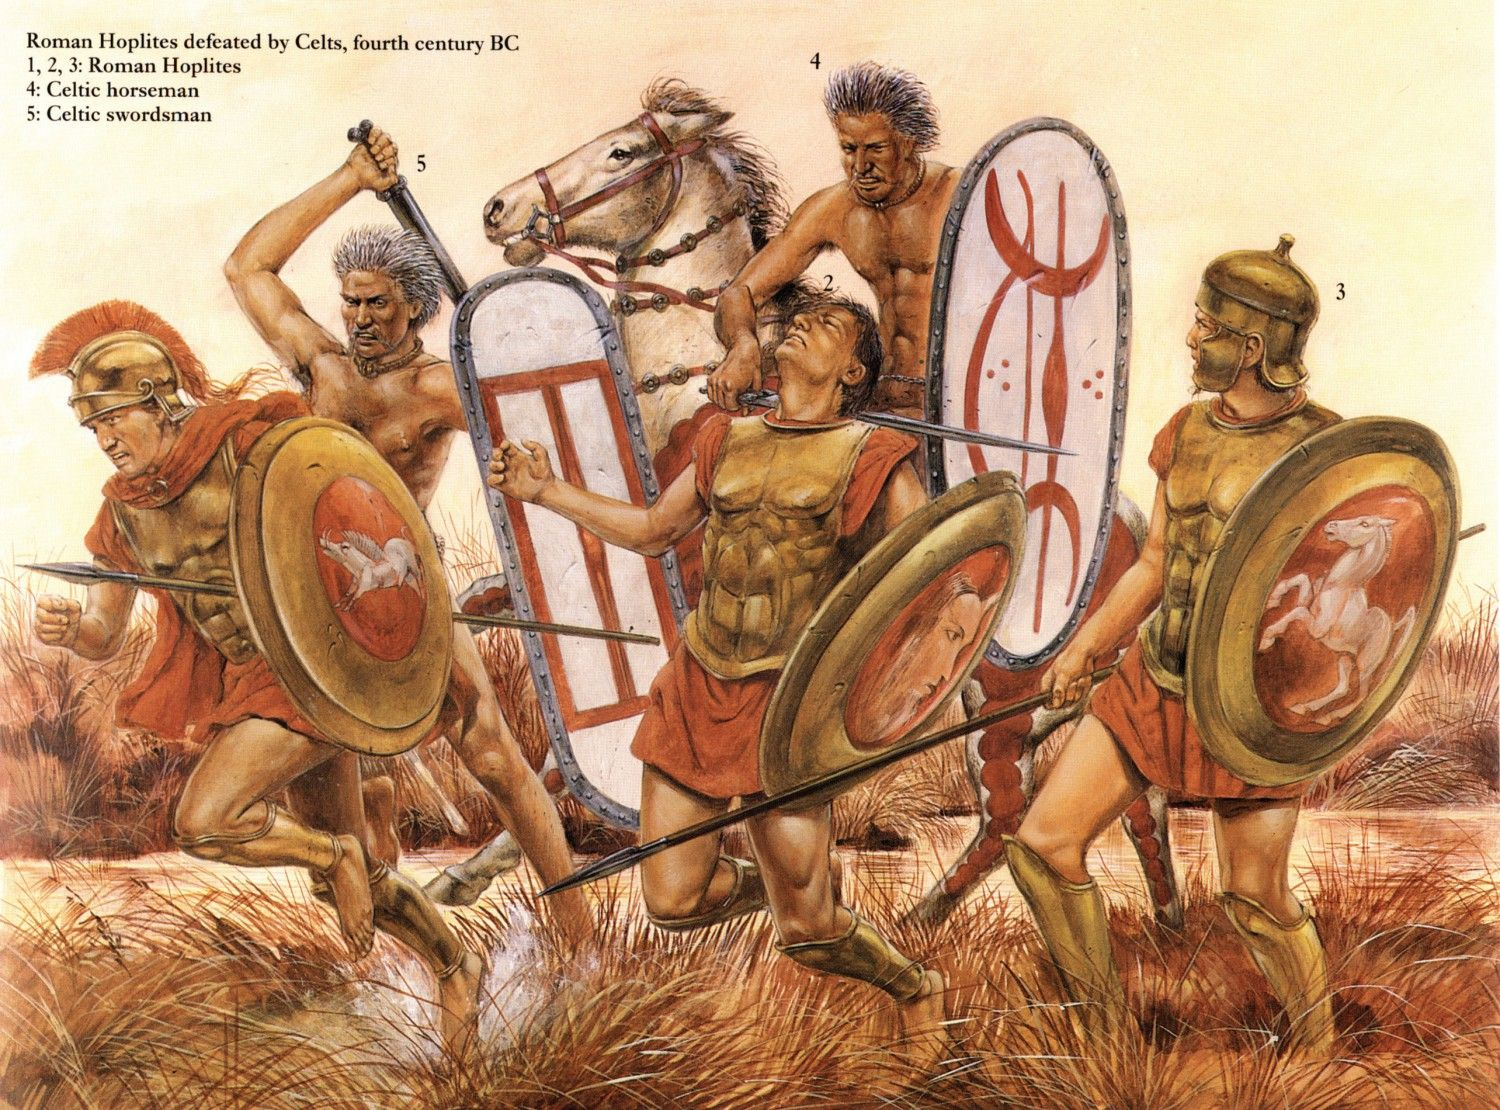 Roman Hoplites defeated by Celts, fourth century BC   Romaner